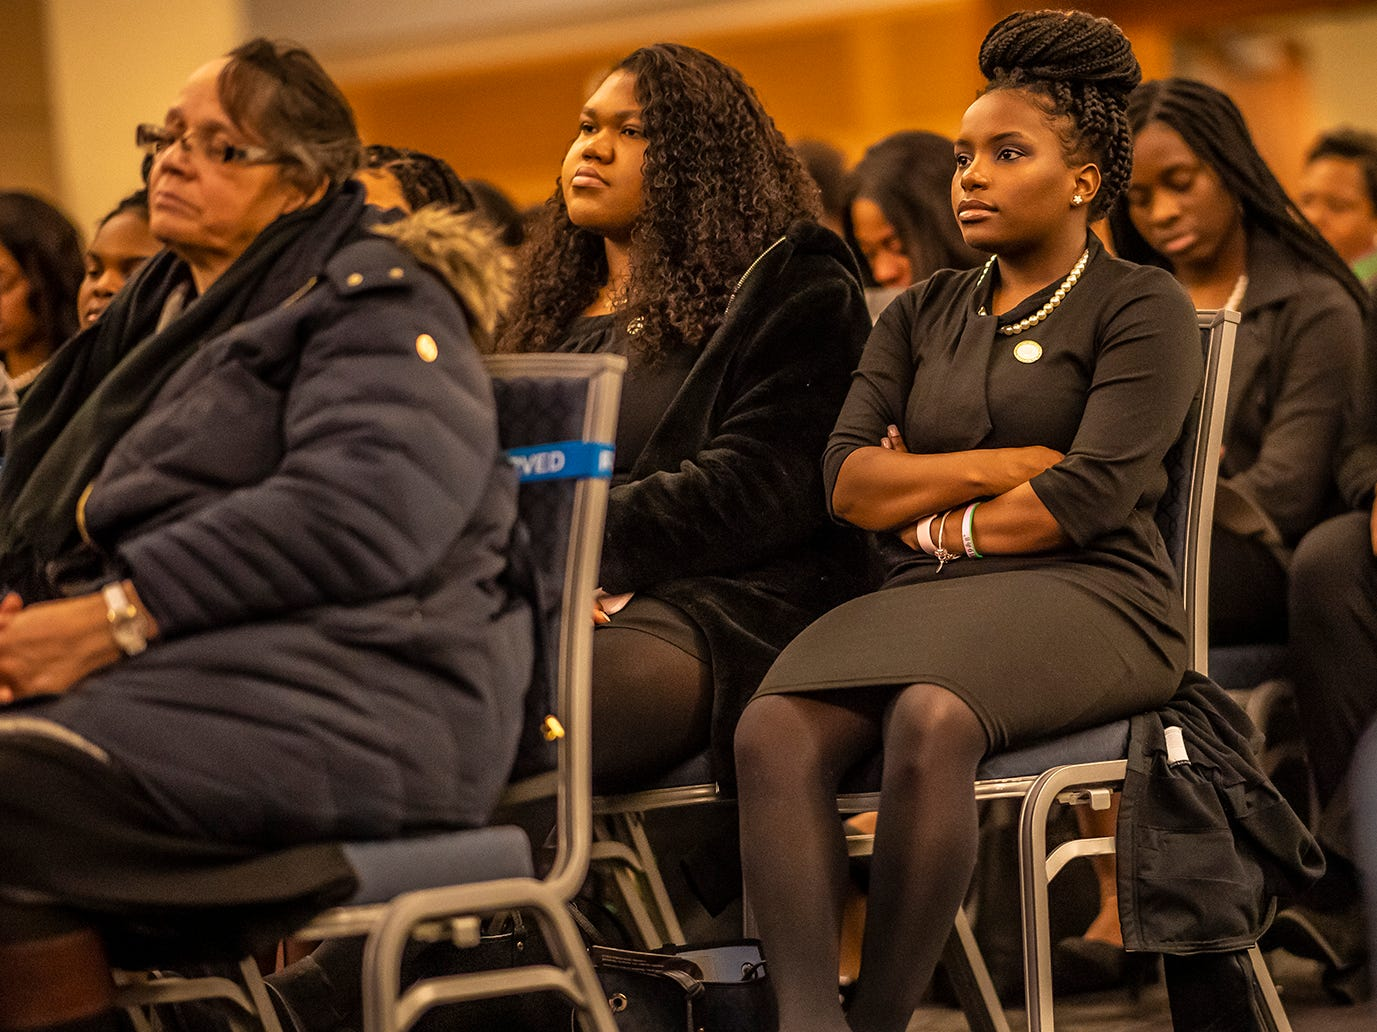 The Eta Psi chapter of Alpha Kappa Alpha Sorority Inc. at MTSU organized the 2019 Martin Luther King Jr. Day Vigil and Celebration. The event was held Monday, Jan. 21, 2019 at the Student Union Building.